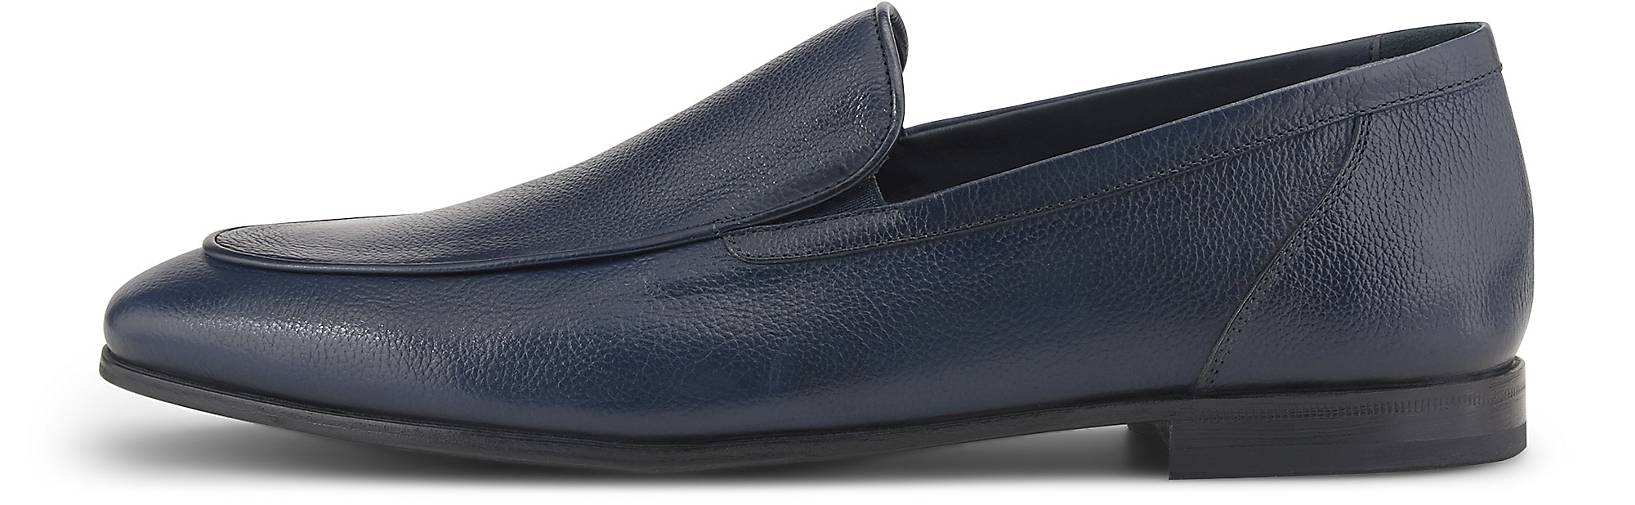 Franceschetti Luxus-Slipper